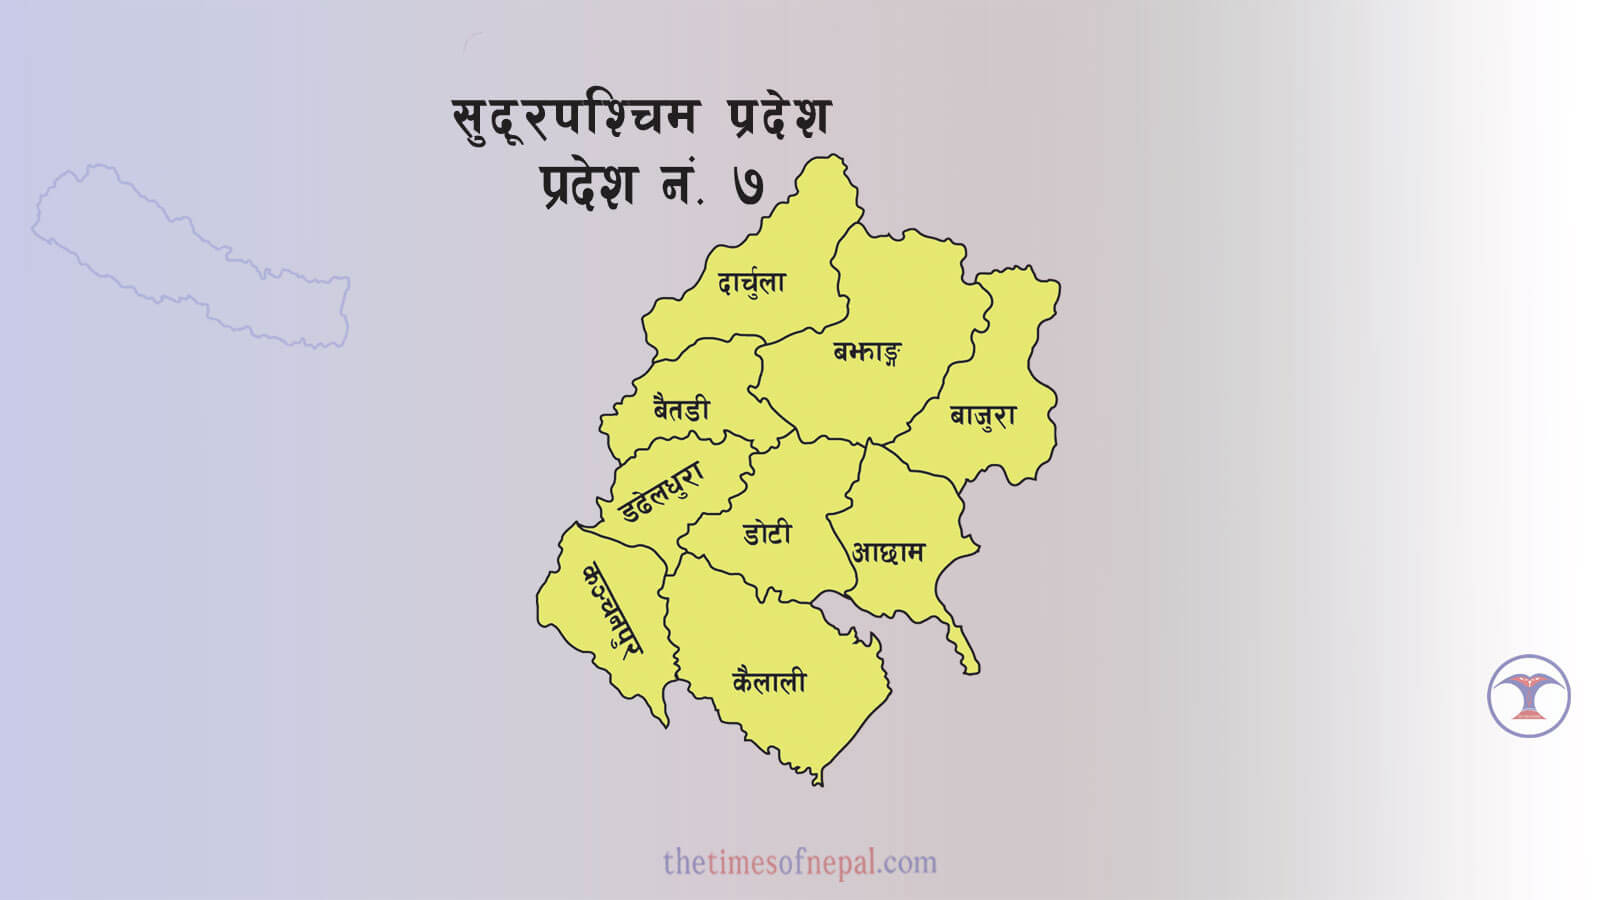 Sudurpashchim Pradesh - The Times Of Nepal